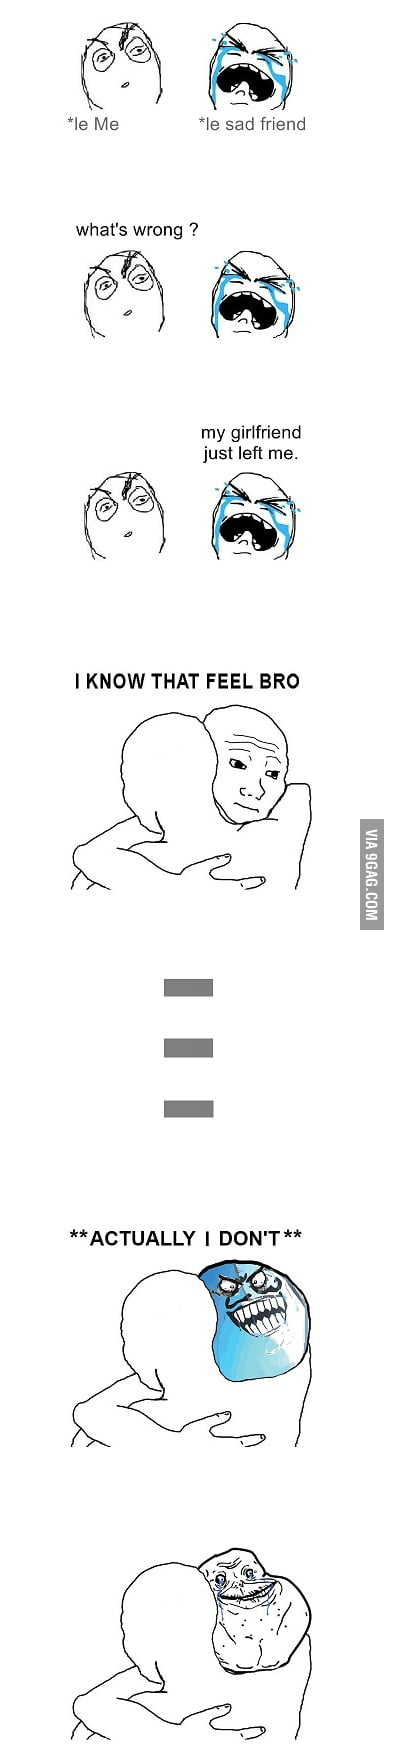 I don't know that feel bro.